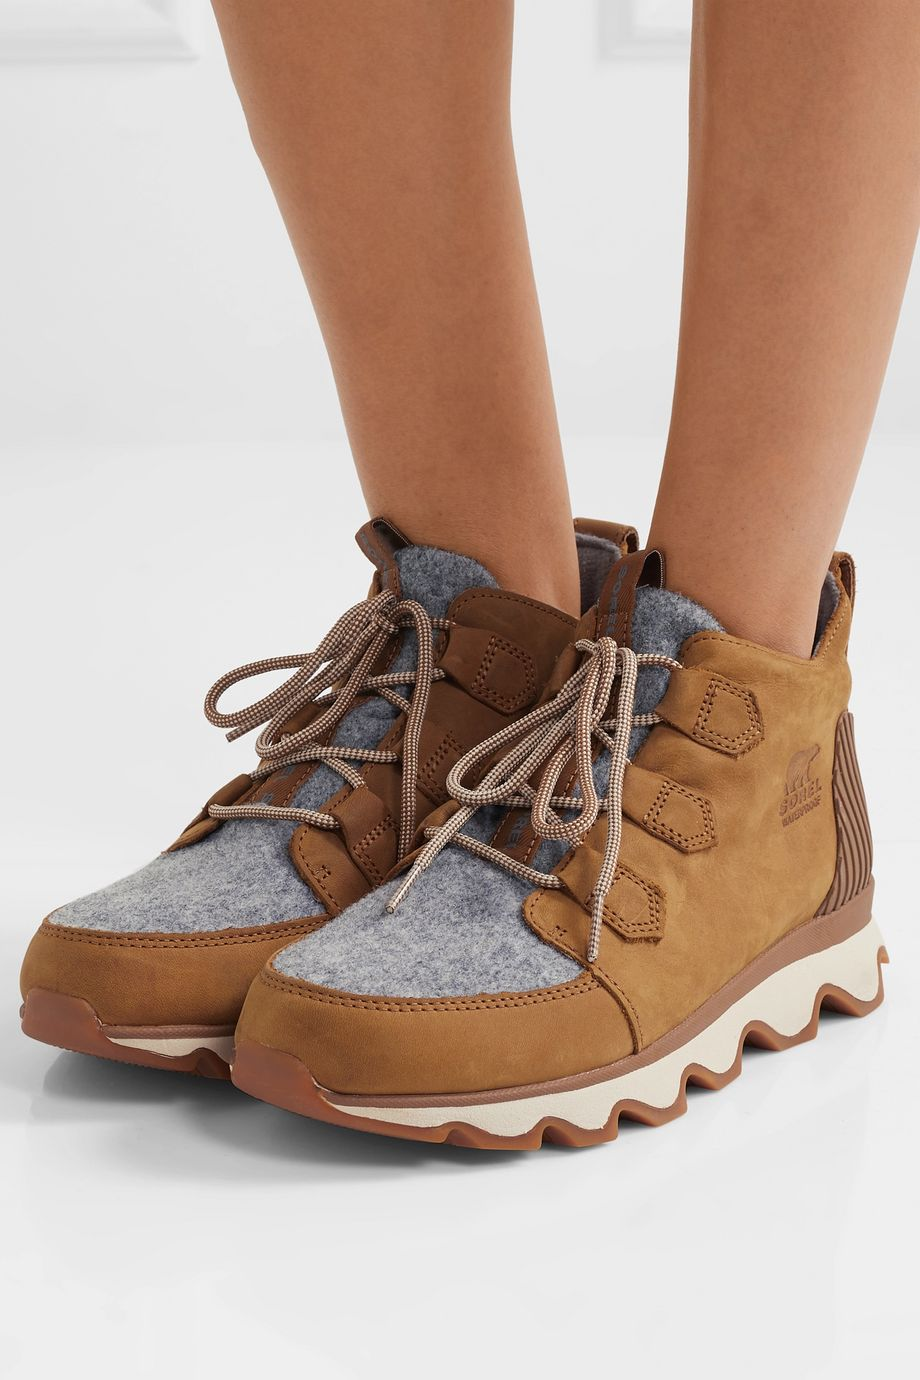 Sorel Kinetic Caribou waterproof suede and felt ankle boots